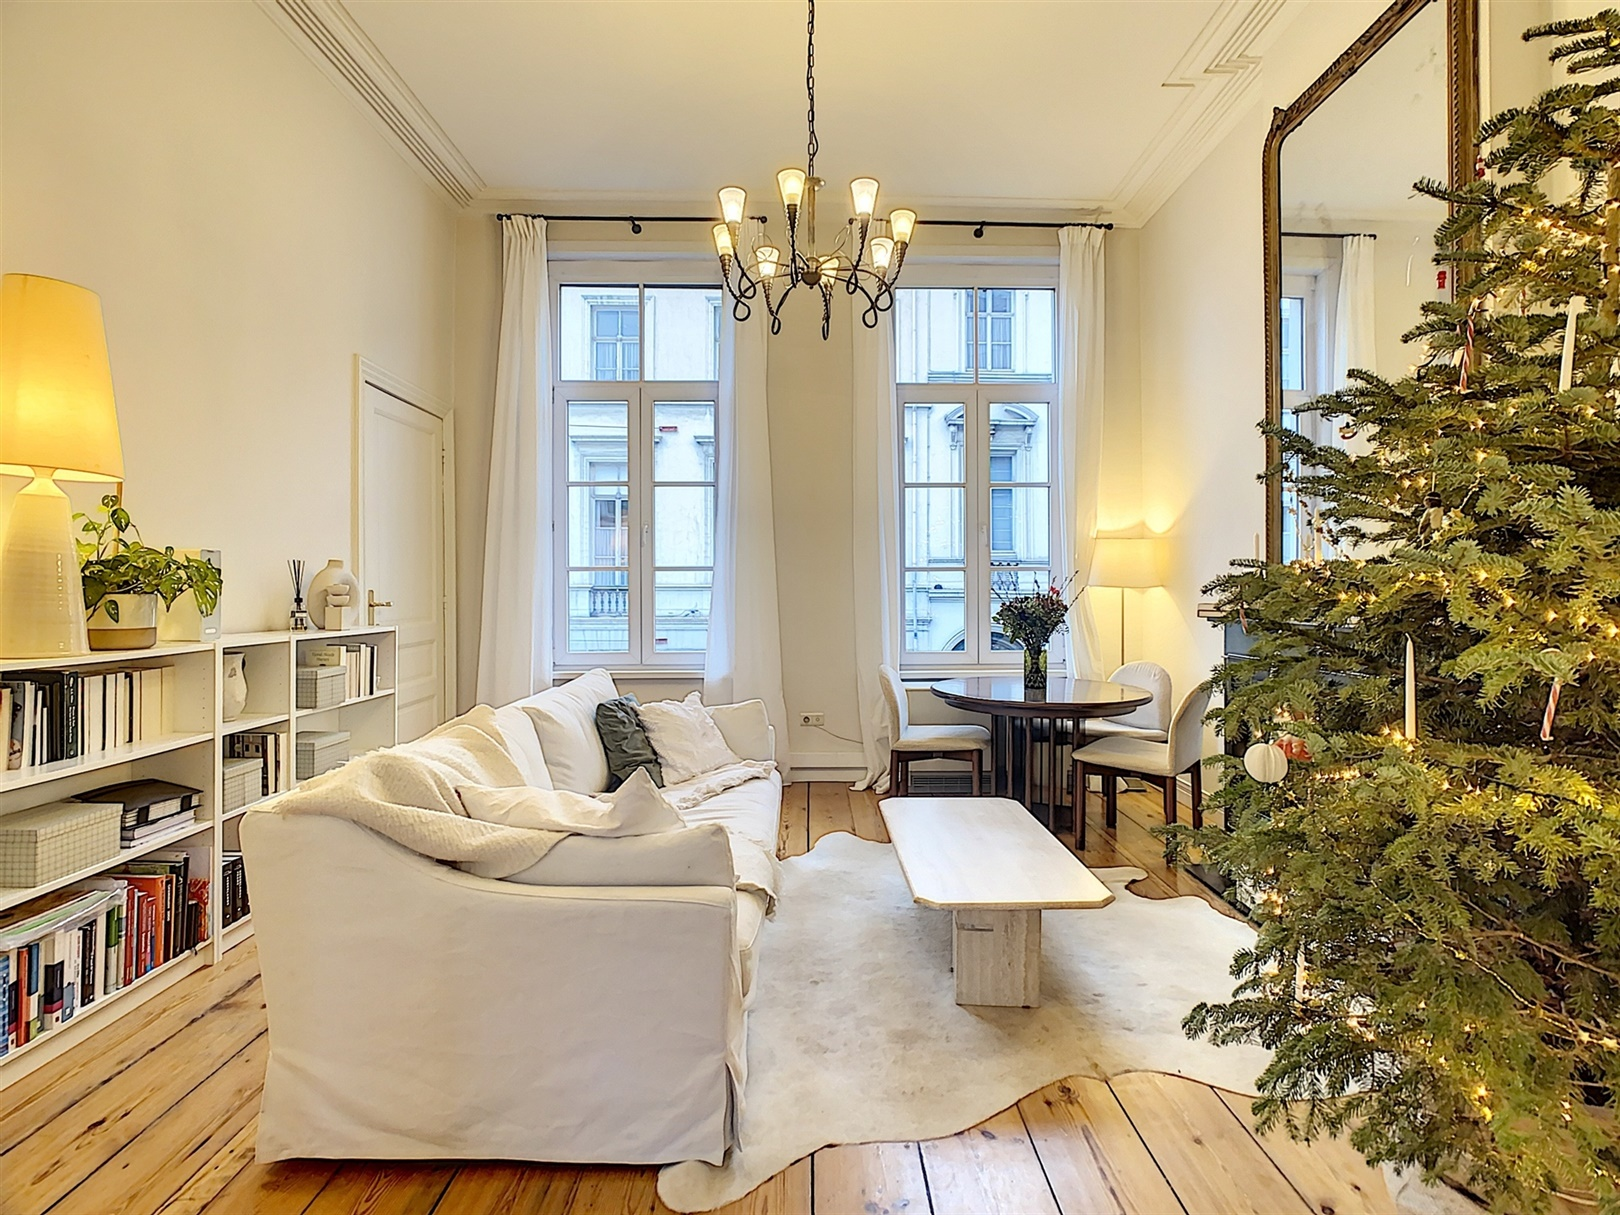 Charmant appartement in herenwoning